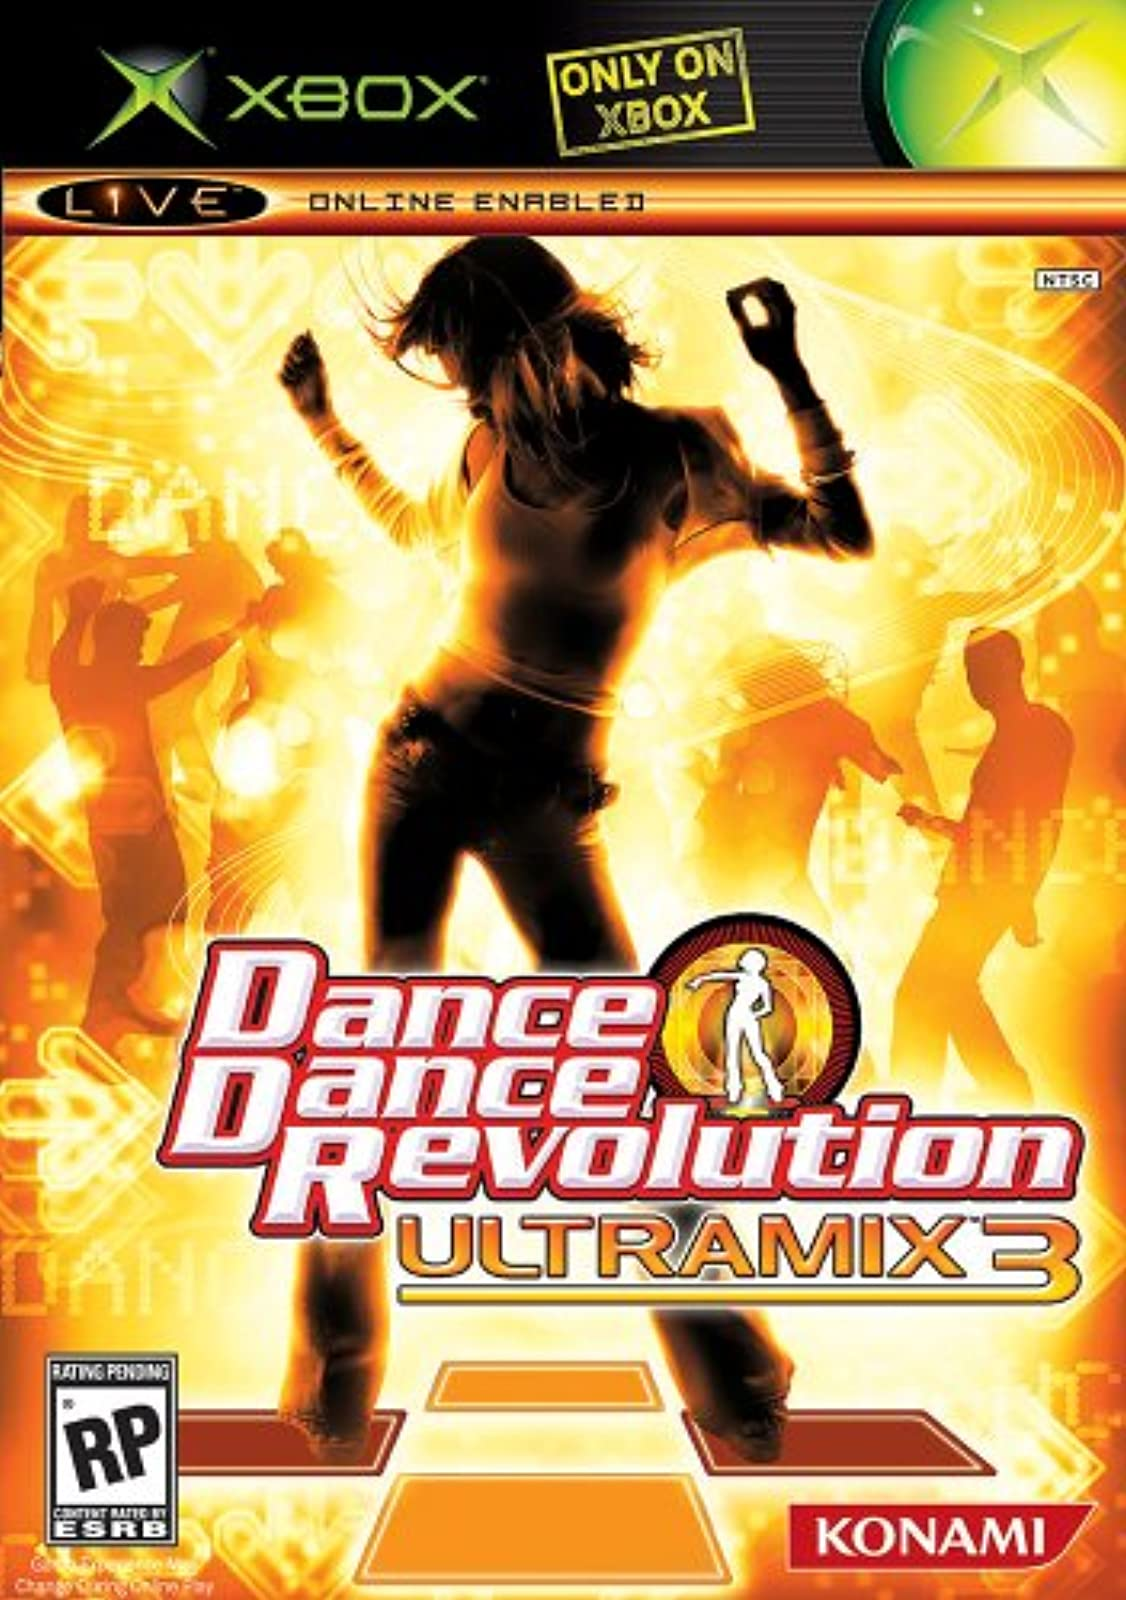 Dance Dance Revolution Ultramix 3 Xbox For Xbox Original RPG